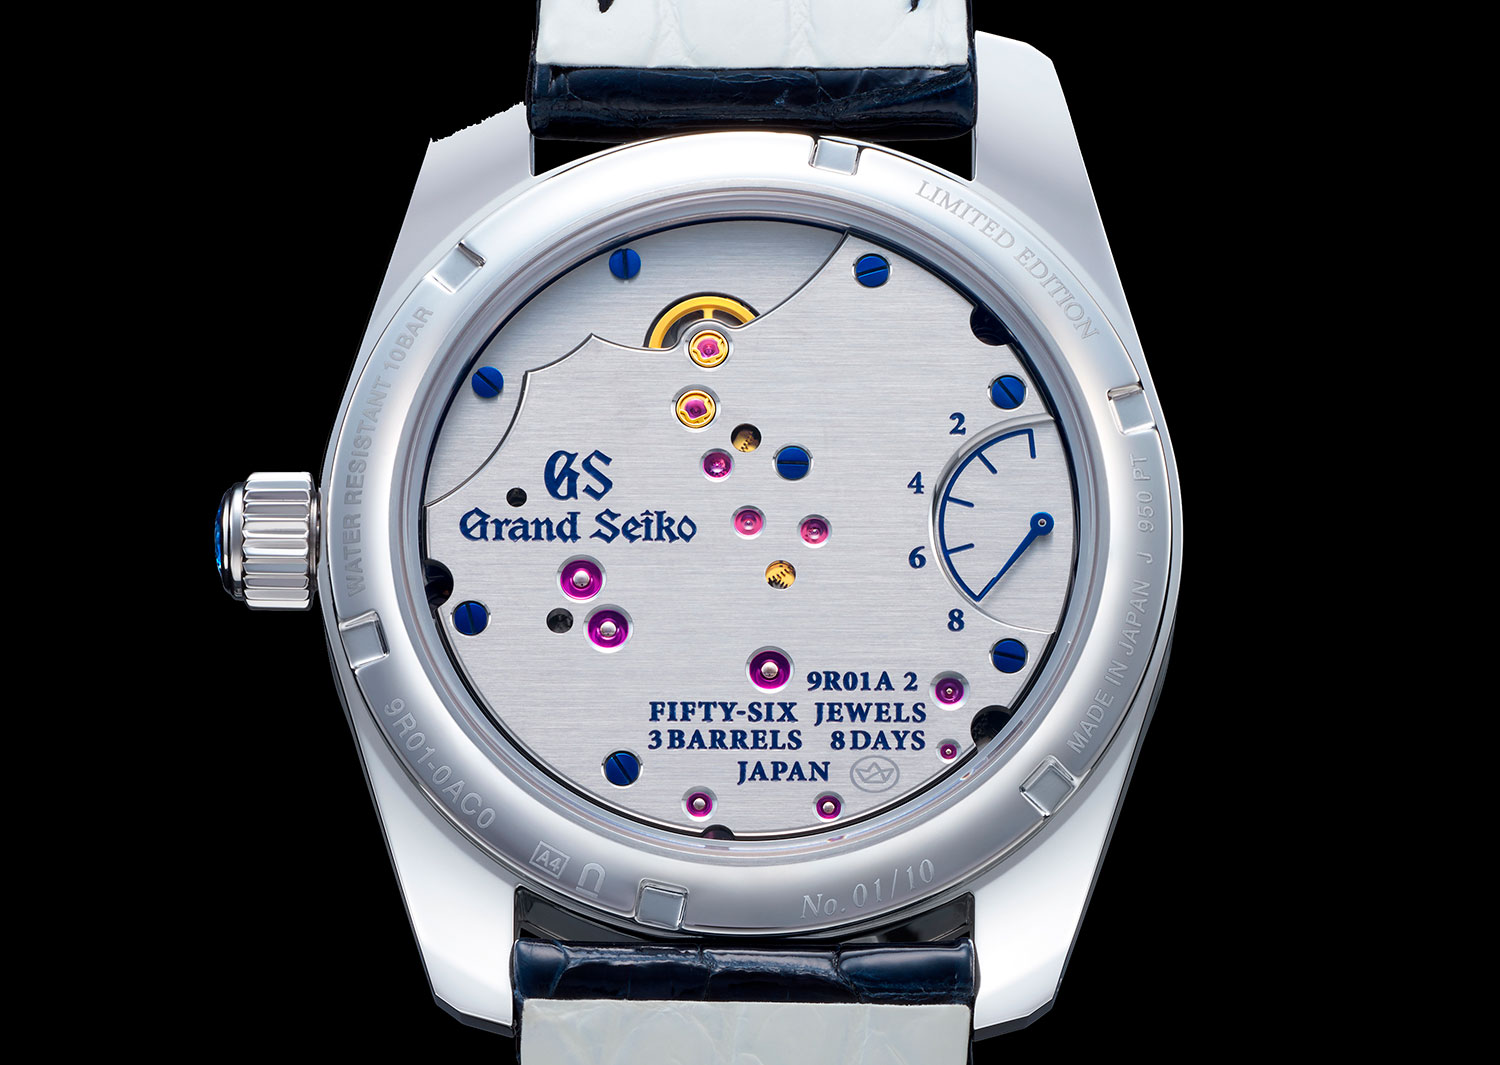 Calibre 9R01A del Grand Seiko Masterpiece Collection Spring Drive 8 Days Jewelry Watch SBGD205